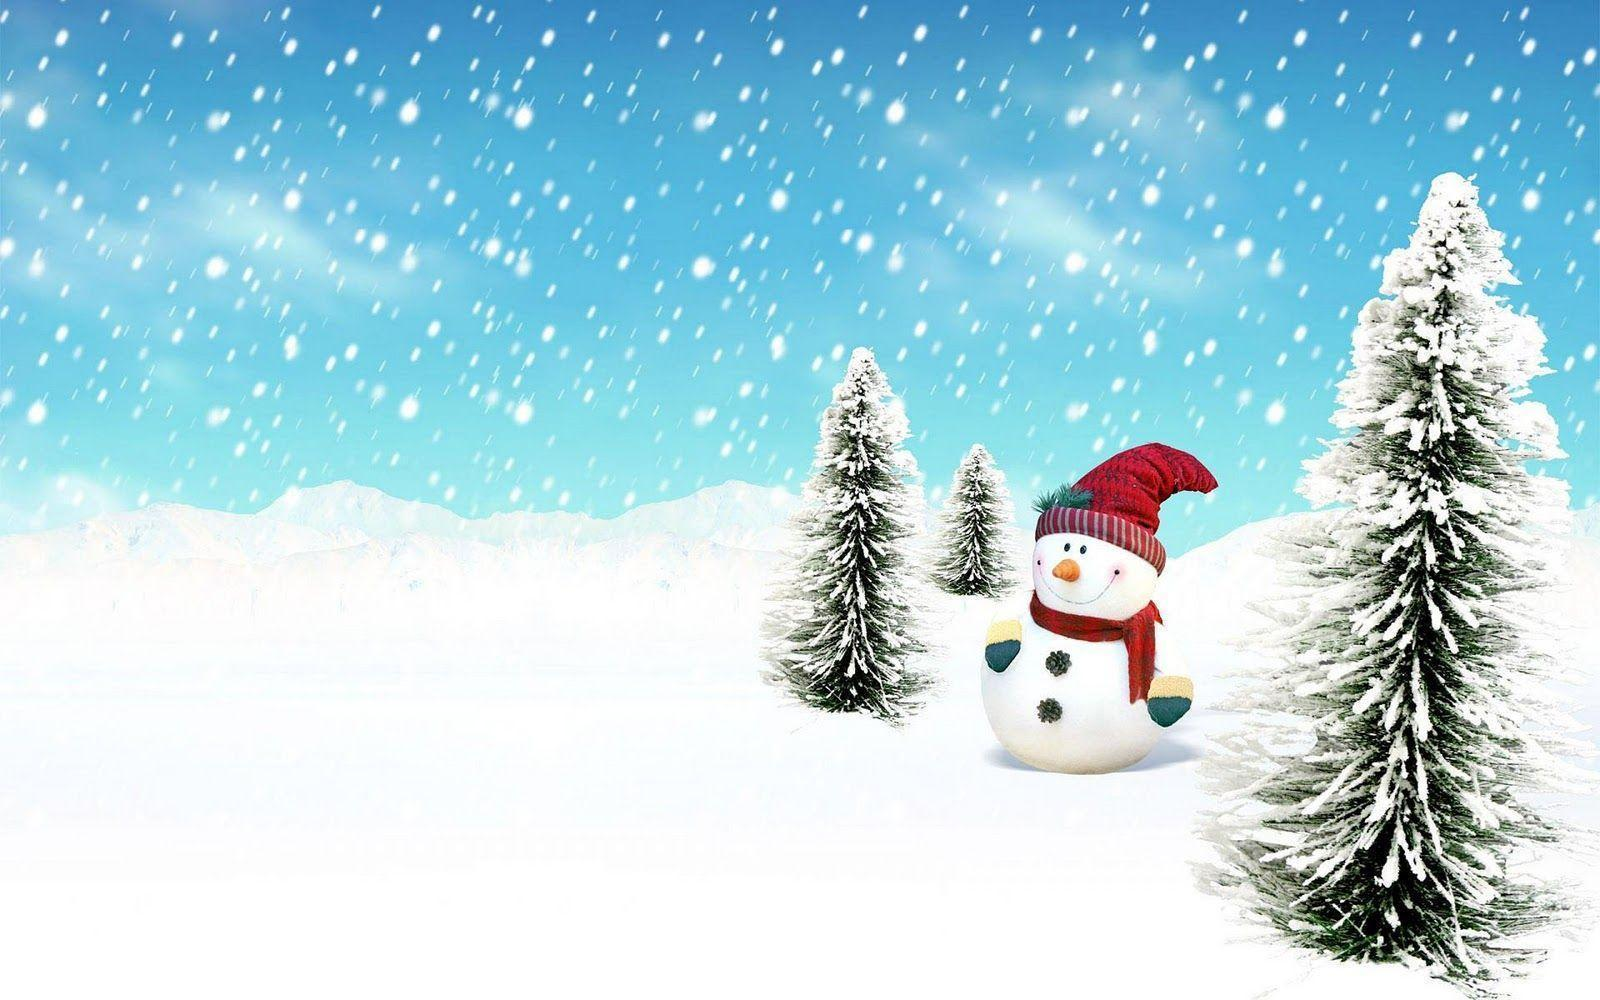 Snowman Wallpaper Design Ideas Free Lovely